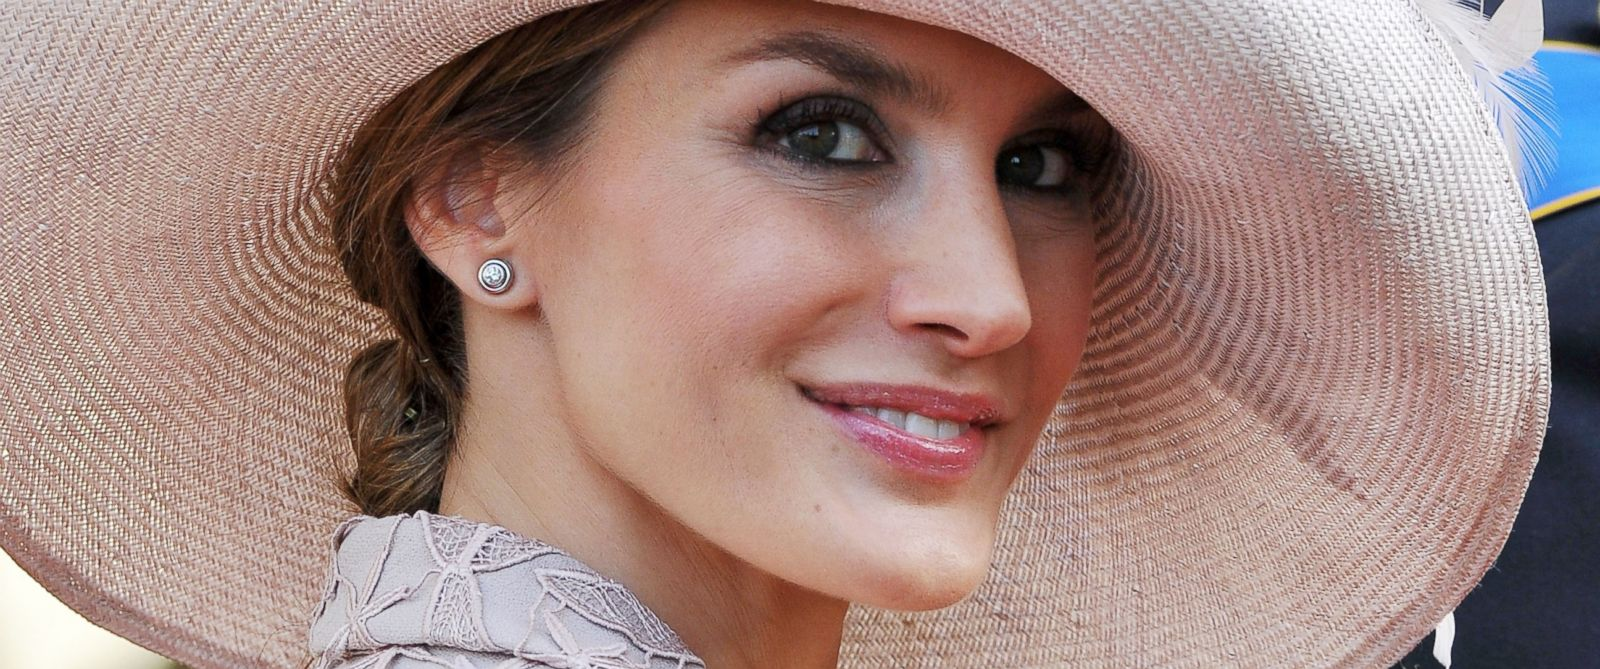 PHOTO: Princess Letizia of Spain attends the wedding ceremony of Prince Guillaume Of Luxembourg, Oct. 20, 2012, in Luxembourg.